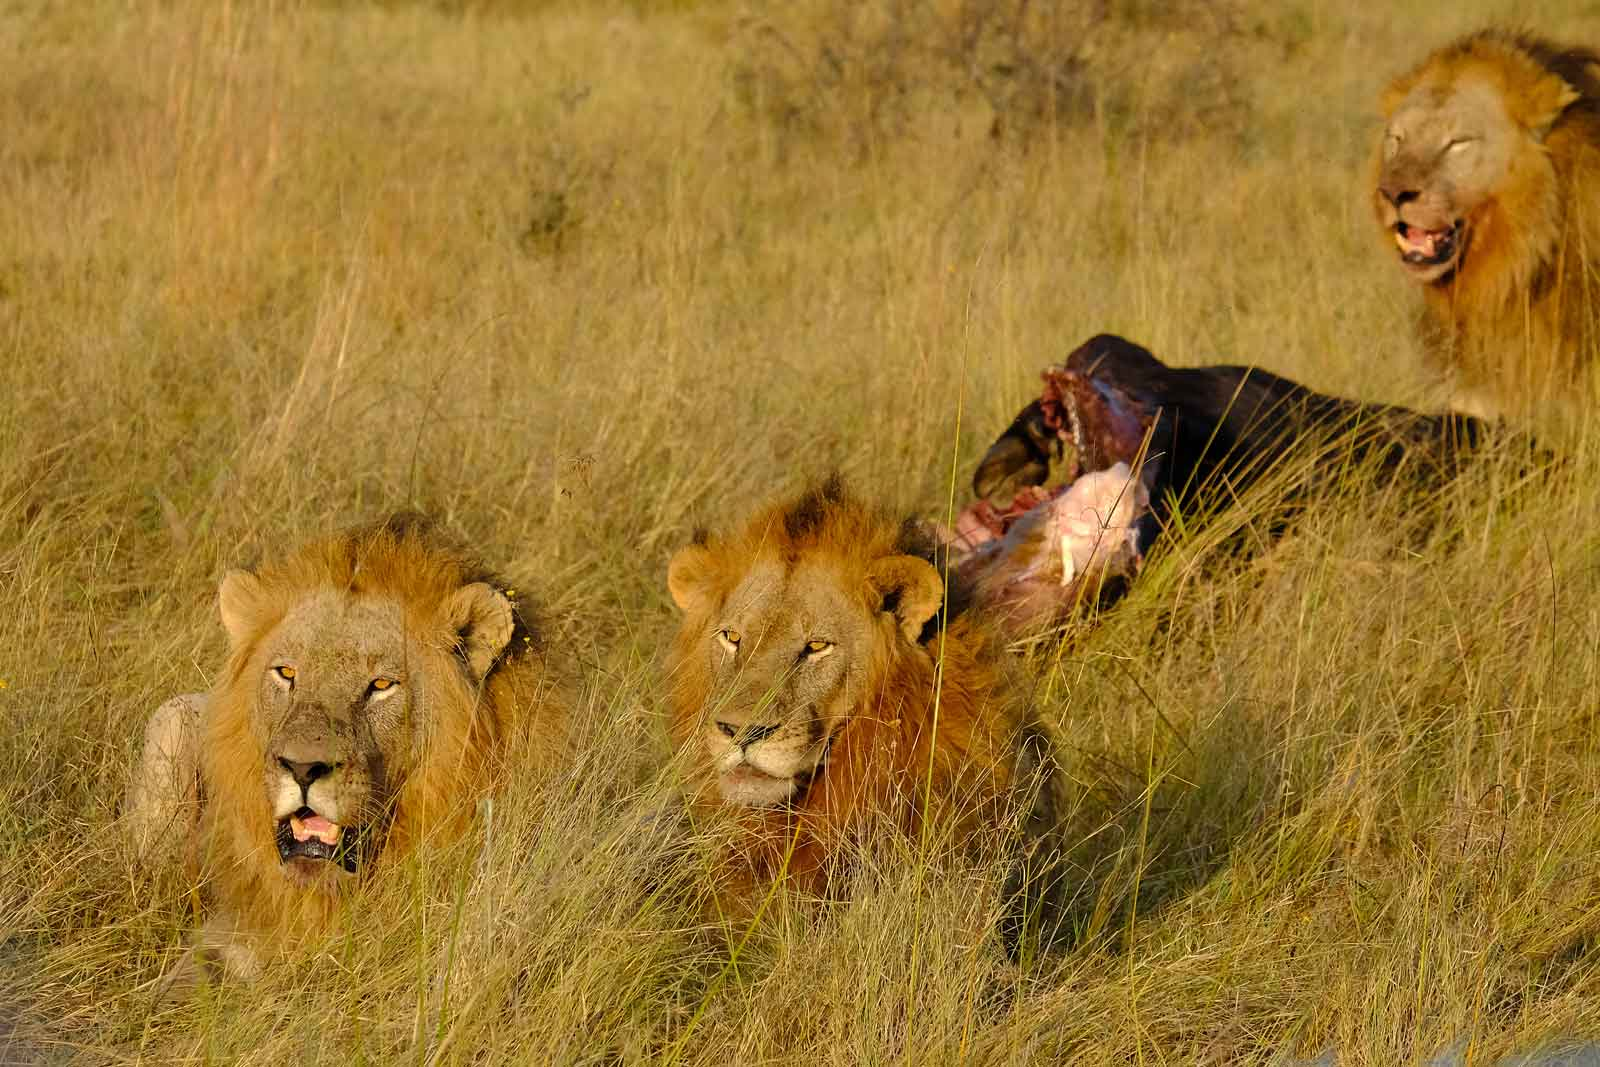 Three lion brothers and their prey